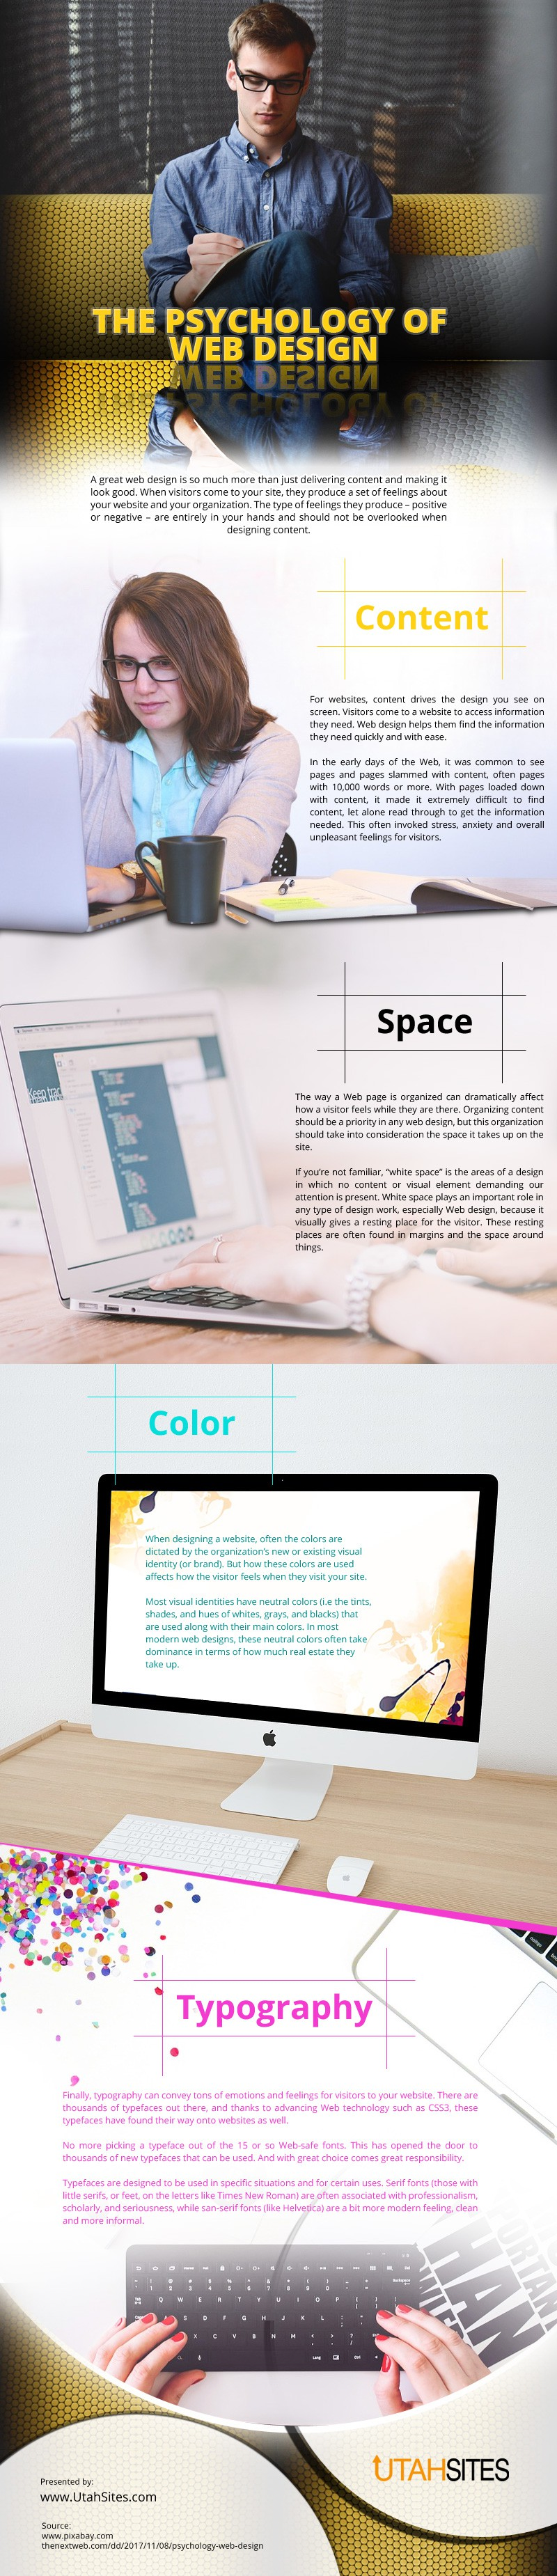 The-Psychology-of-Web-Design Infographic